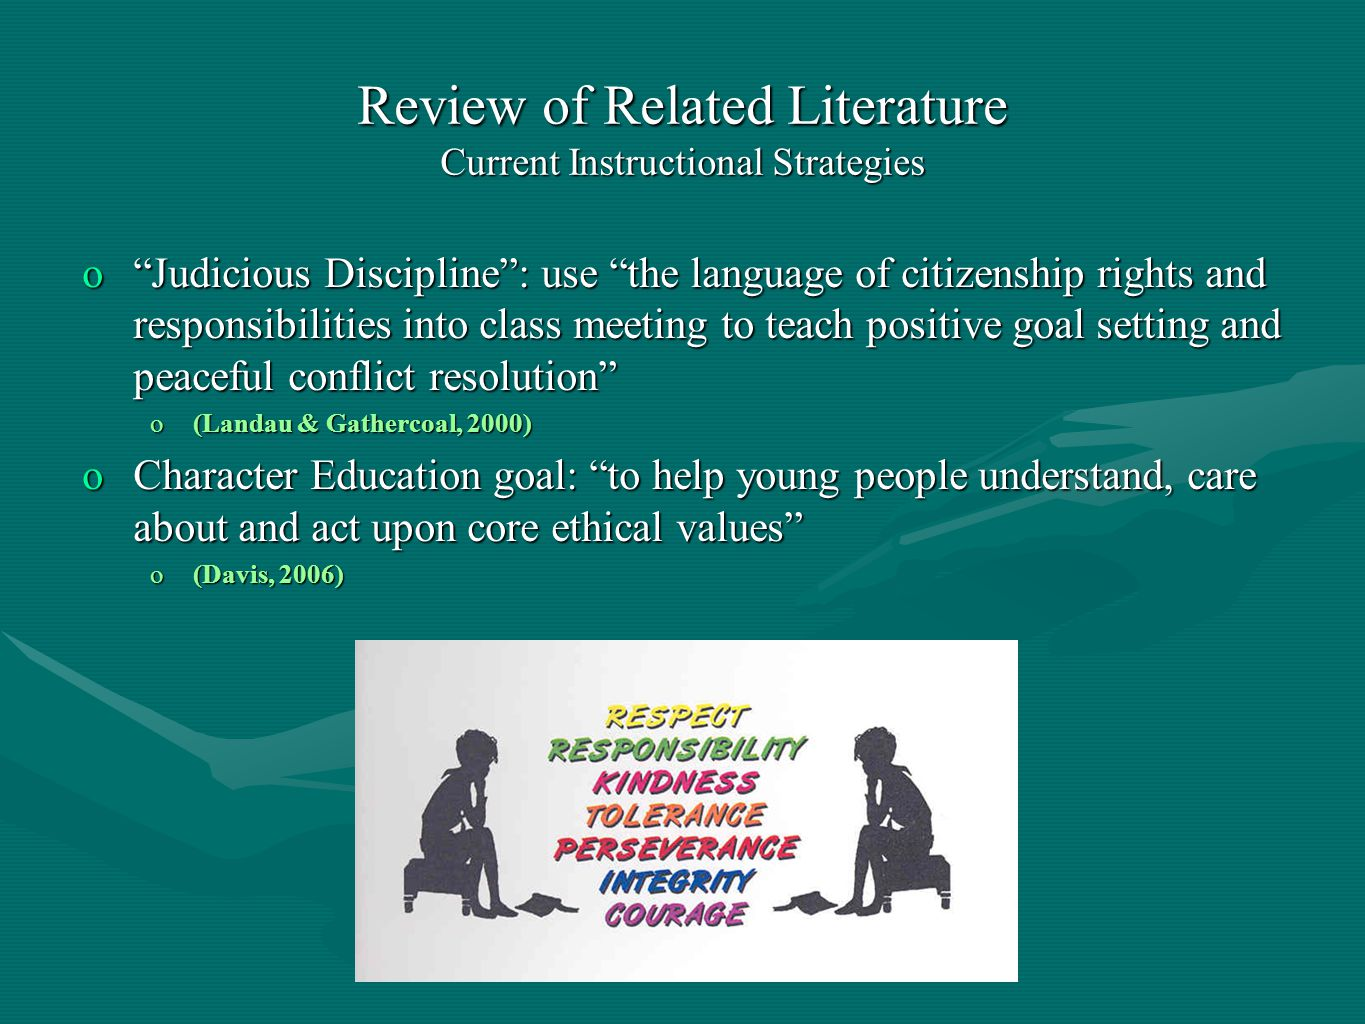 Review of Related Literature Current Instructional Strategies oJudicious Discipline: use the language of citizenship rights and responsibilities into class meeting to teach positive goal setting and peaceful conflict resolution o(Landau & Gathercoal, 2000) oCharacter Education goal: to help young people understand, care about and act upon core ethical values o(Davis, 2006)